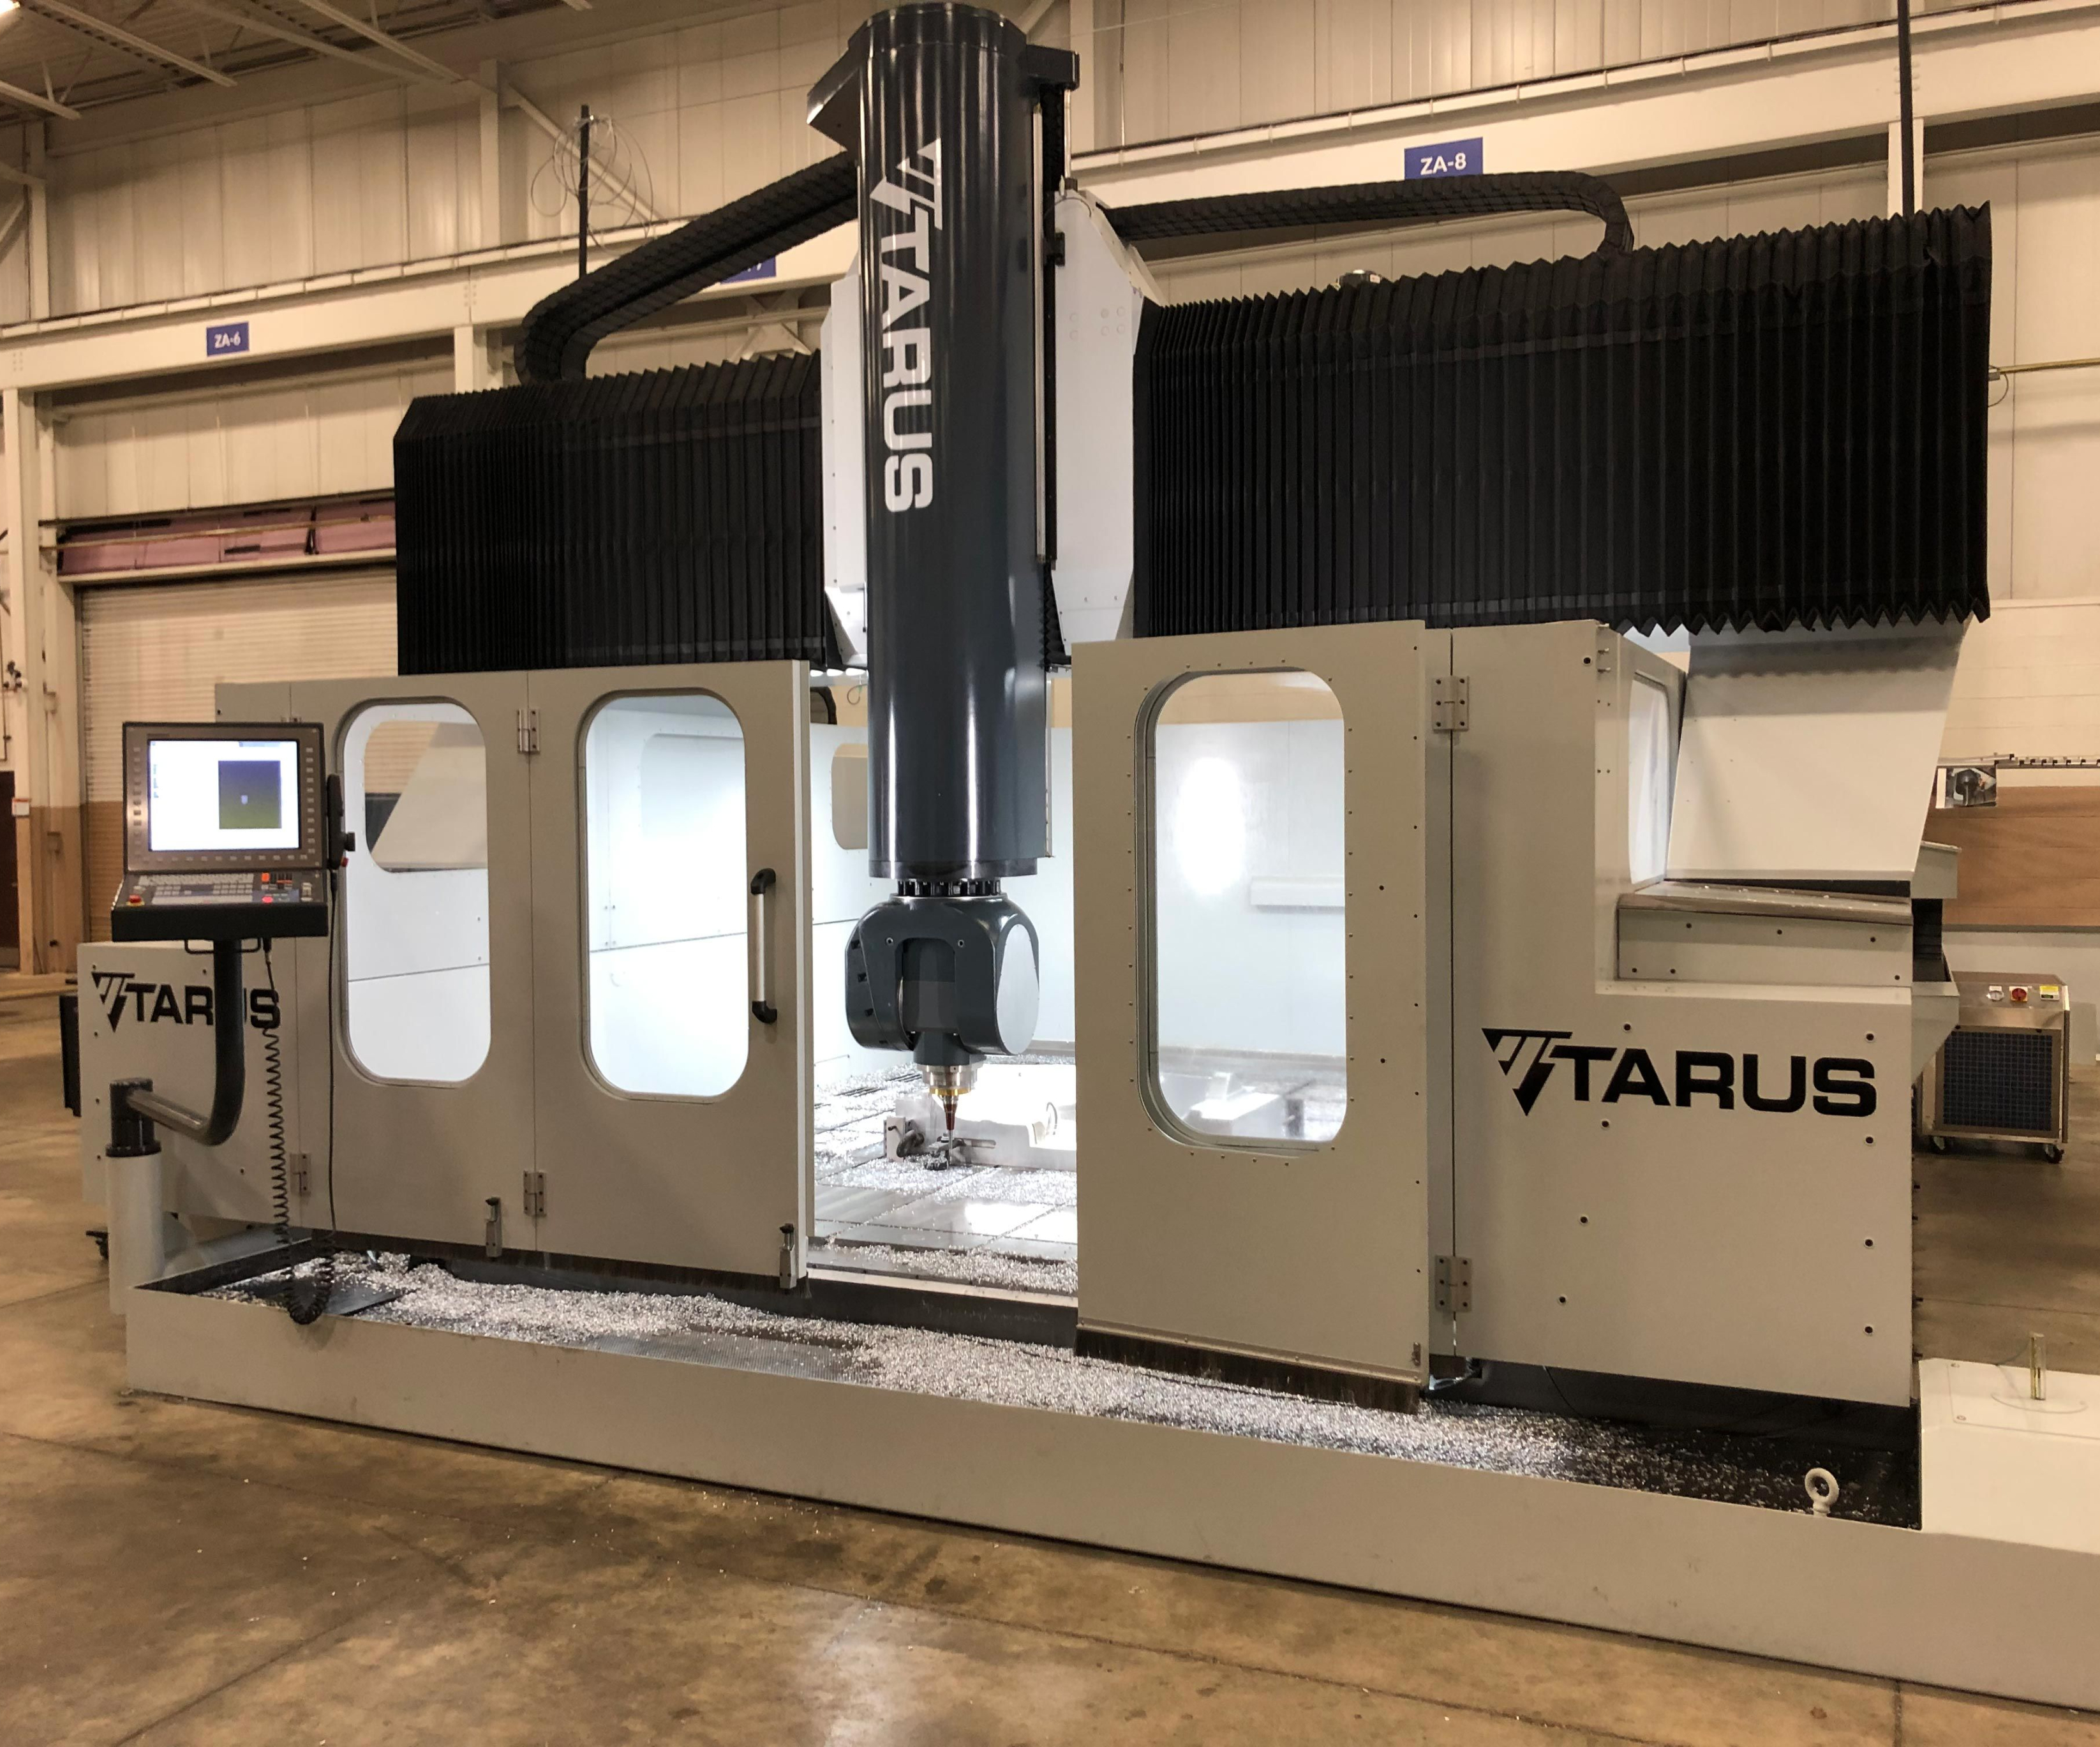 Large Equipment Offerings Buoyed by New CNC